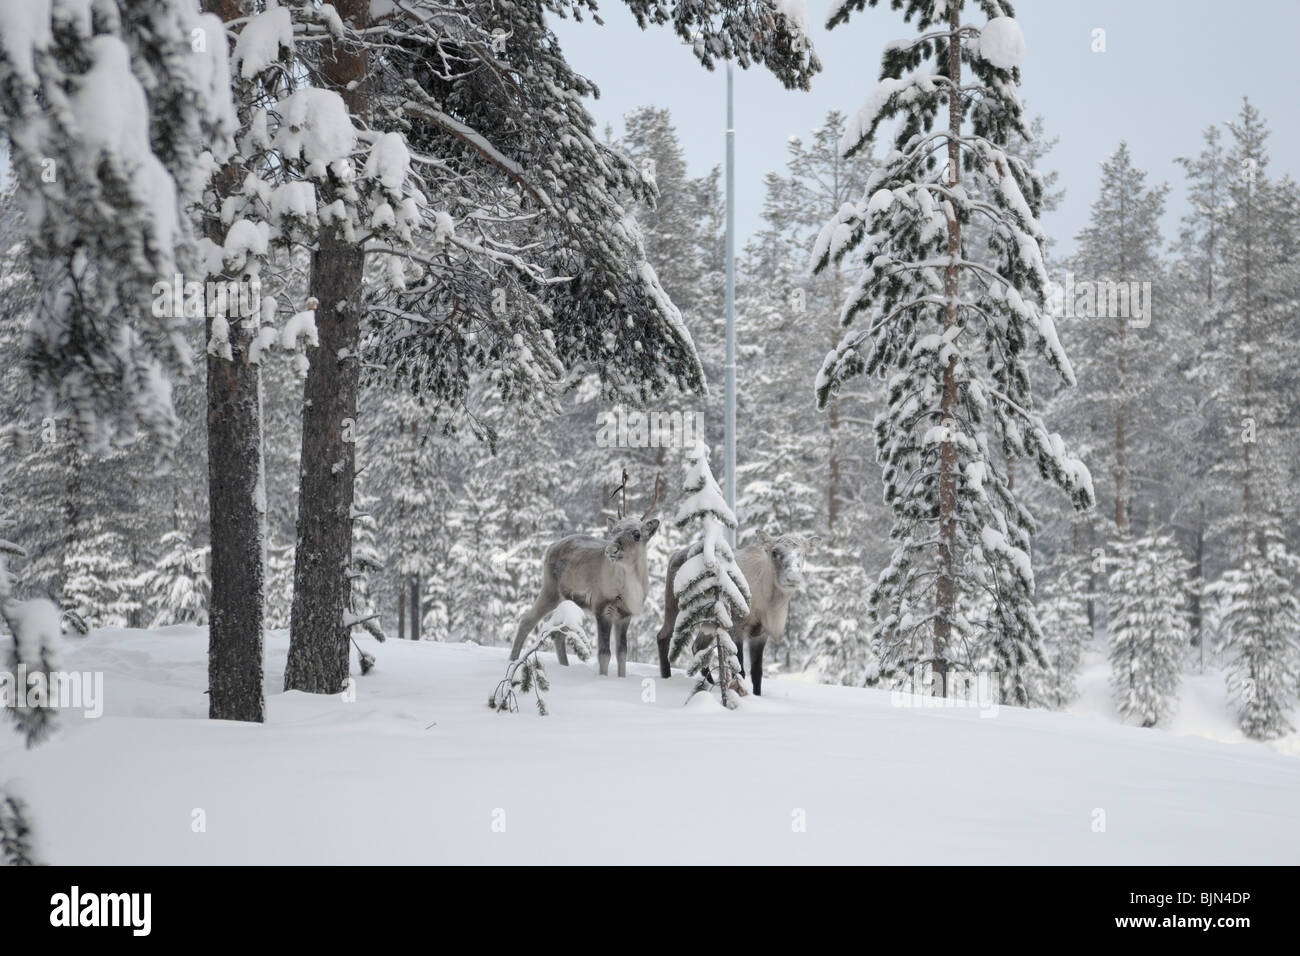 Two animals looking for food near Gallivare in Norrbotten in the northern part of Sweden. - Stock Image